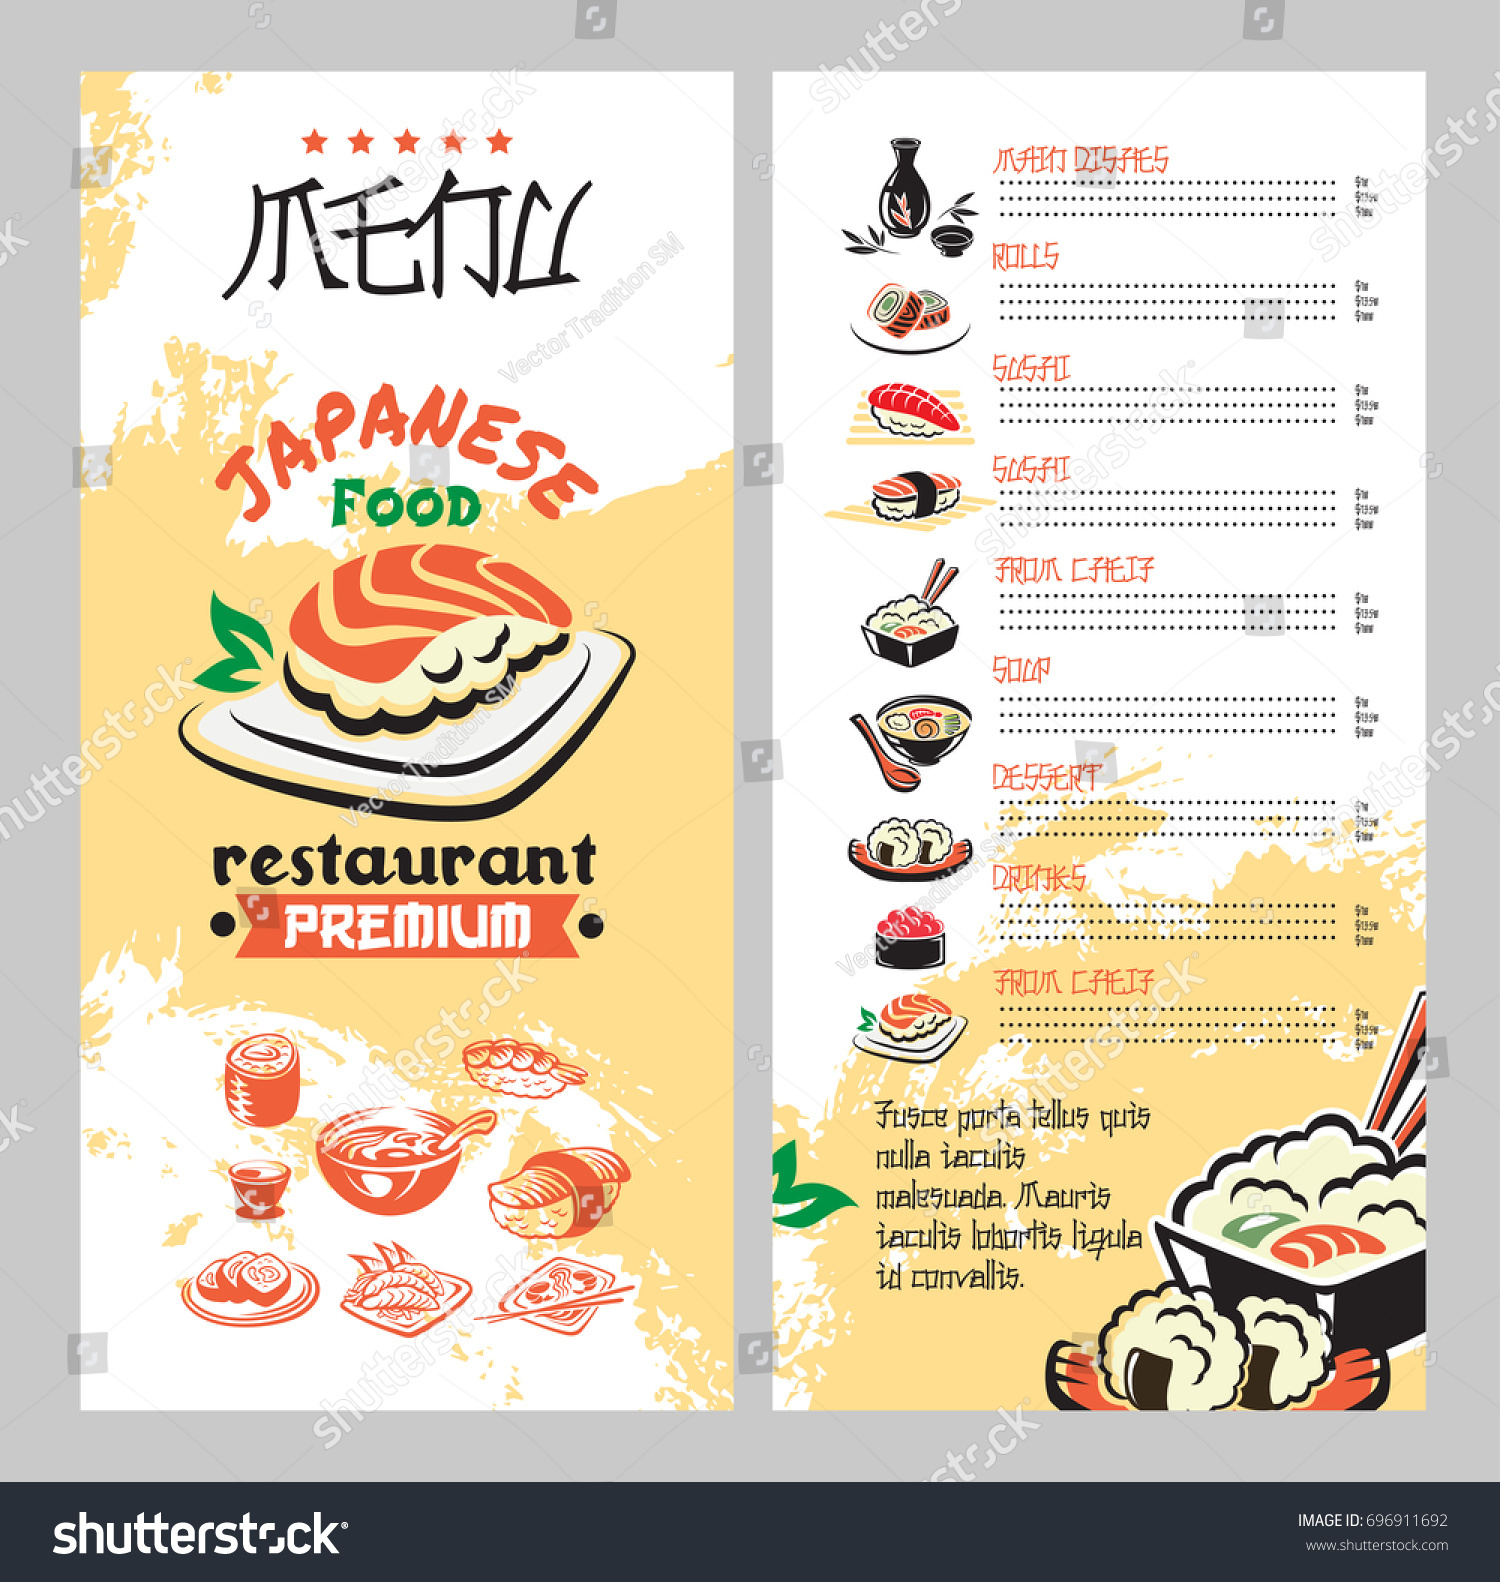 Japanese food asian cuisine restaurant menu stock vector 696911692 japanese food for asian cuisine restaurant menu template seafood rice sushi roll with salmon pronofoot35fo Choice Image